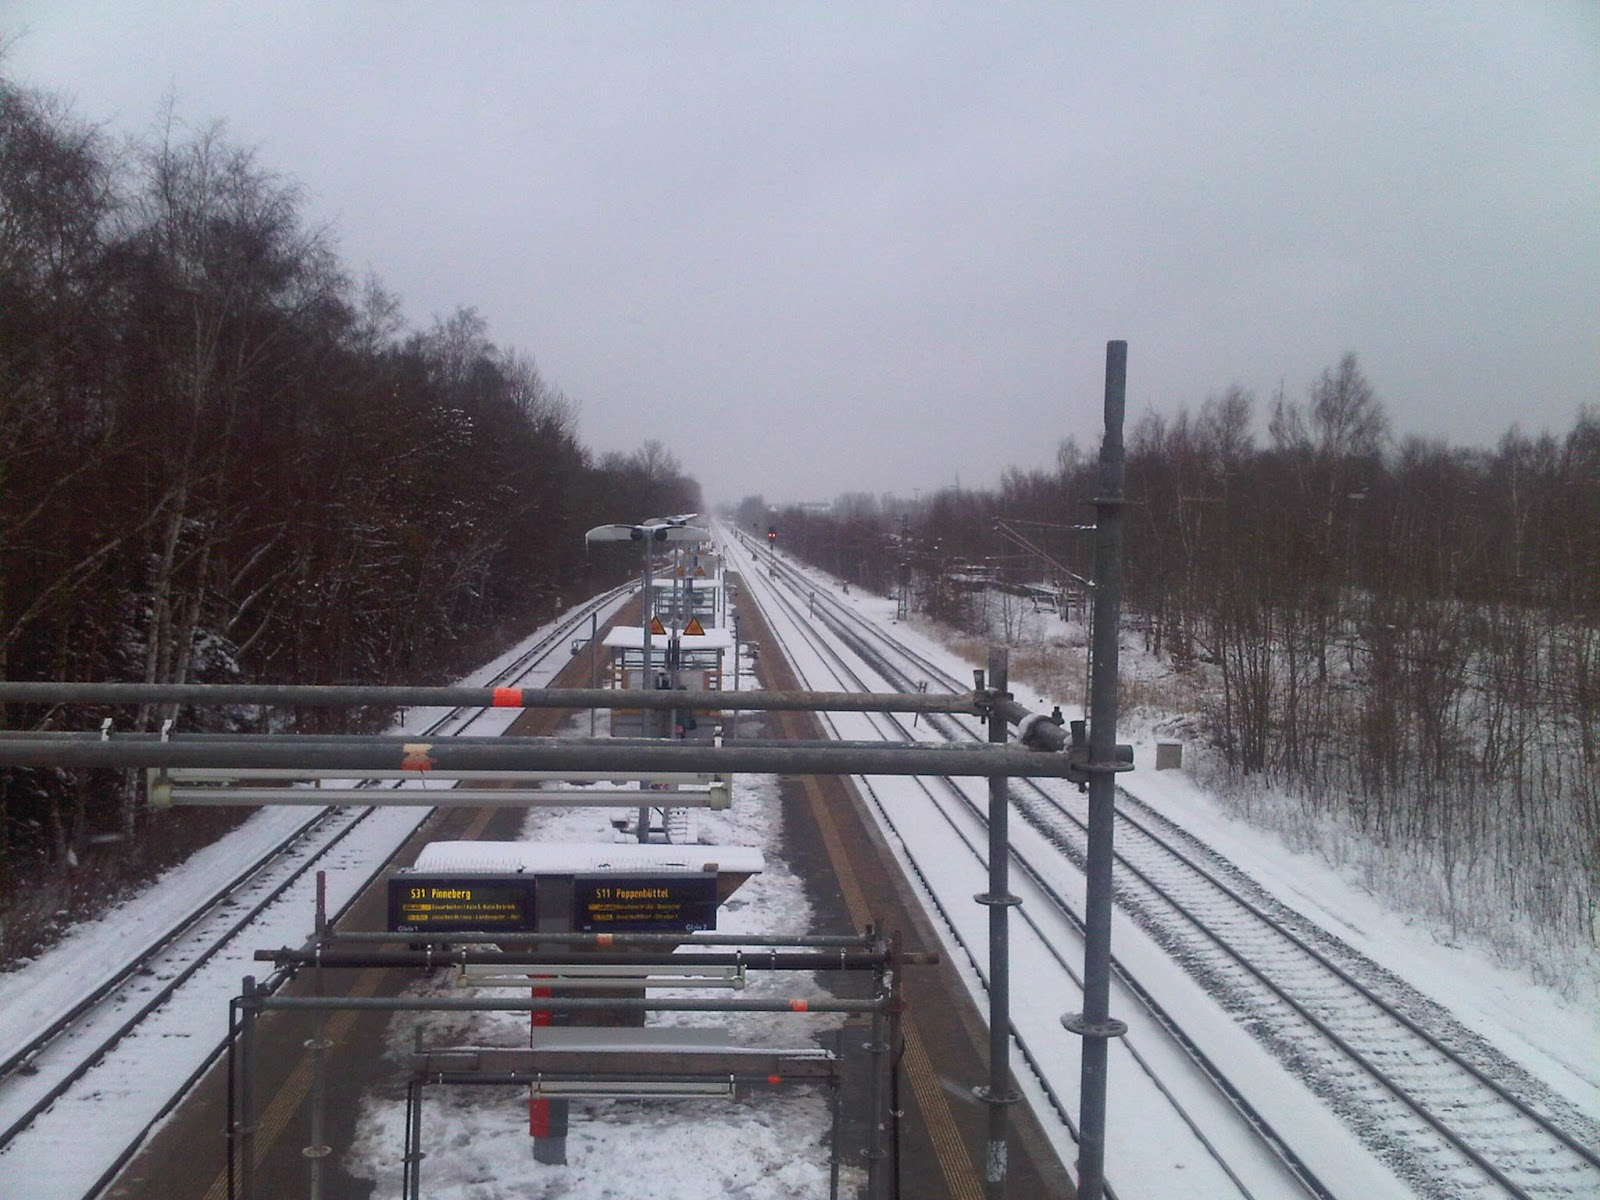 S-Bahn Station Krupunder im Winter